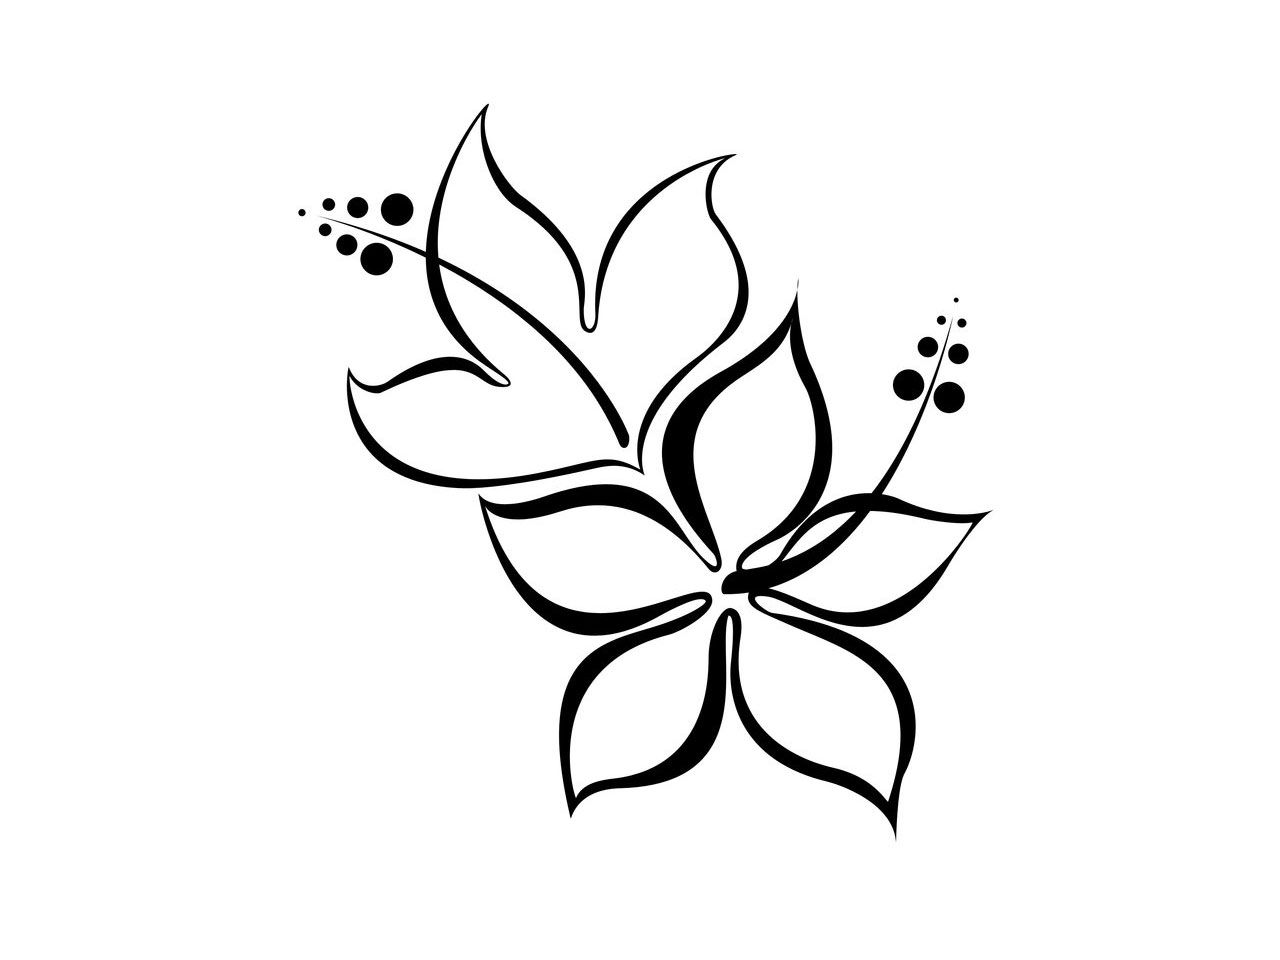 A Simple Drawing Of A Flower - ClipArt Best